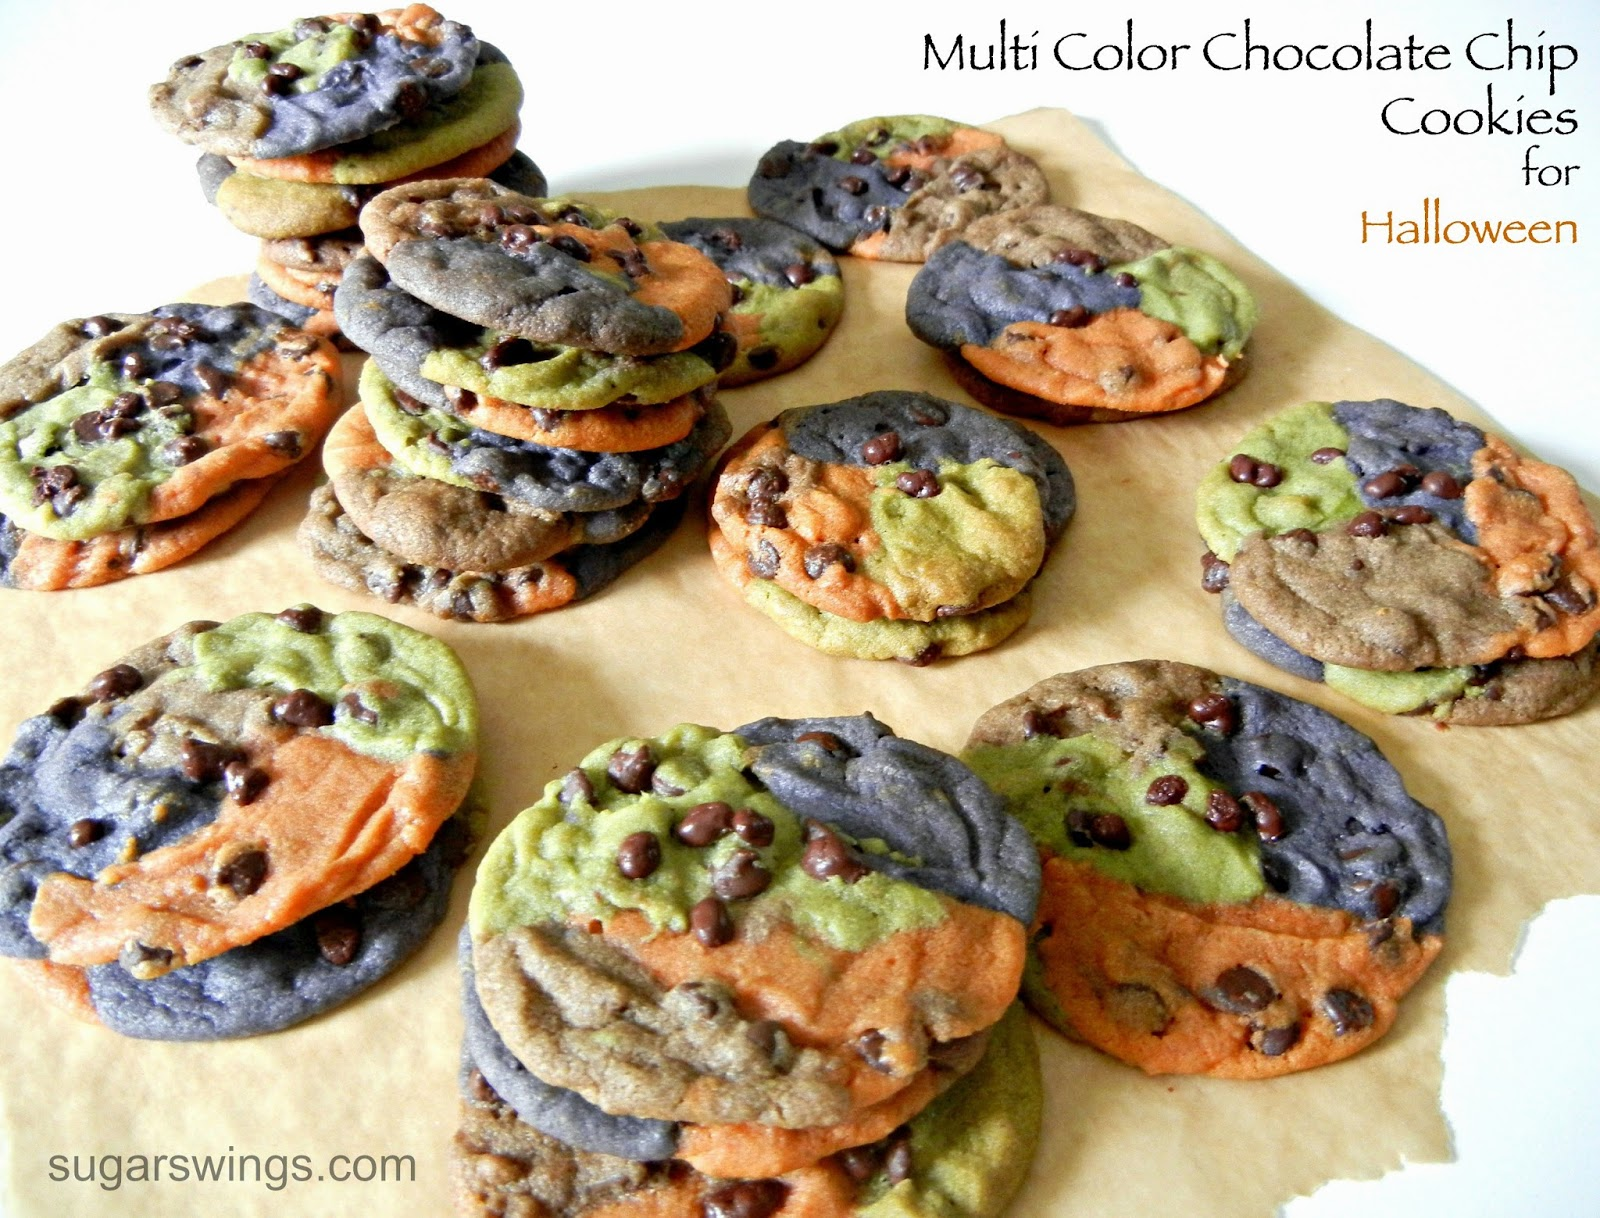 sugar swings! serve some: colorful chocolate chip cookies for halloween